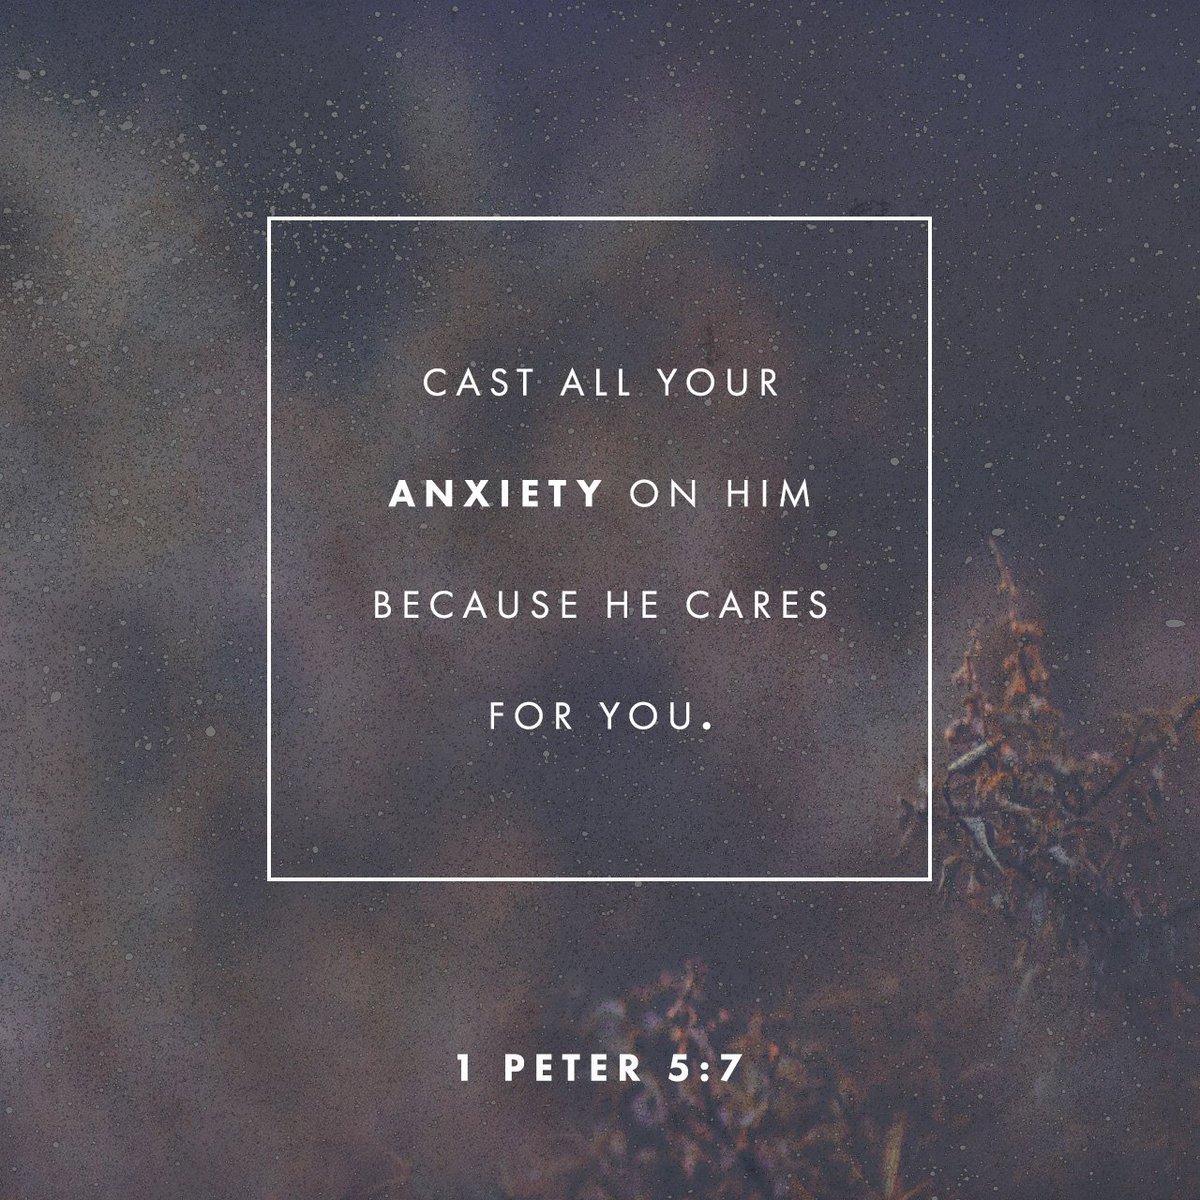 Cast all your anxiety on him because he cares for you. https://t.co/S9bOmDFUsH https://t.co/Emmd6KgH7f